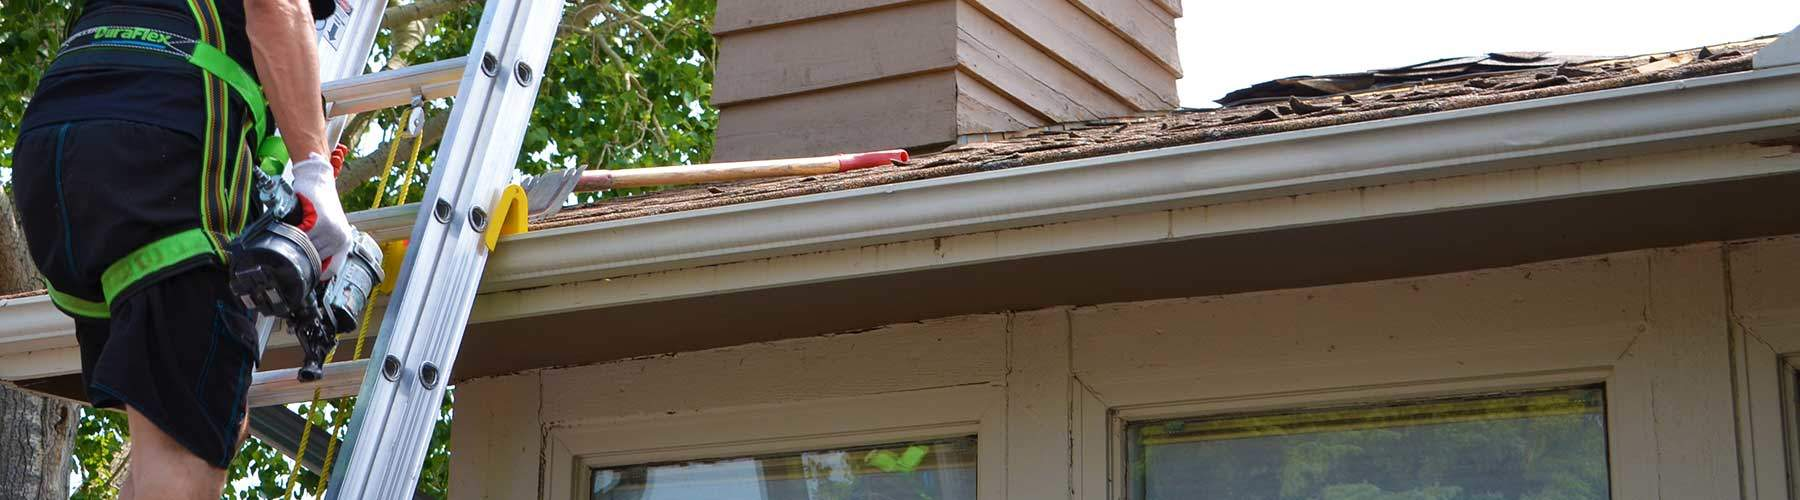 Fixing the soffit